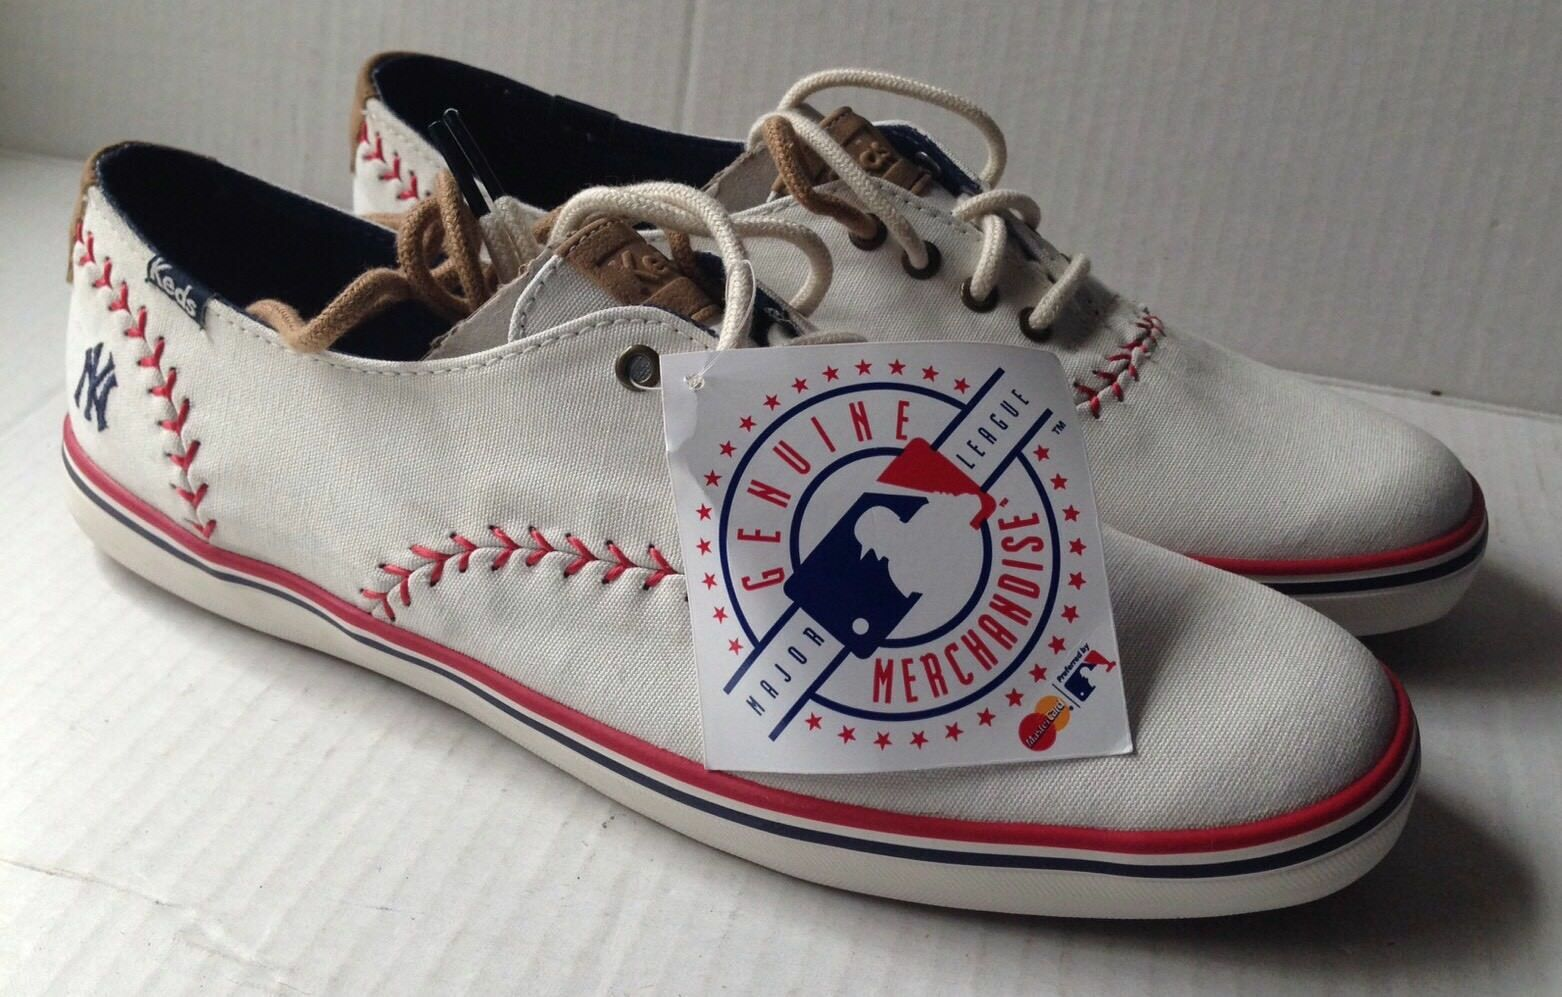 KEDS NEW YORK YANKEES BASEBALL WOMEN'S SHOES, US 9.5, NEW NO BOX